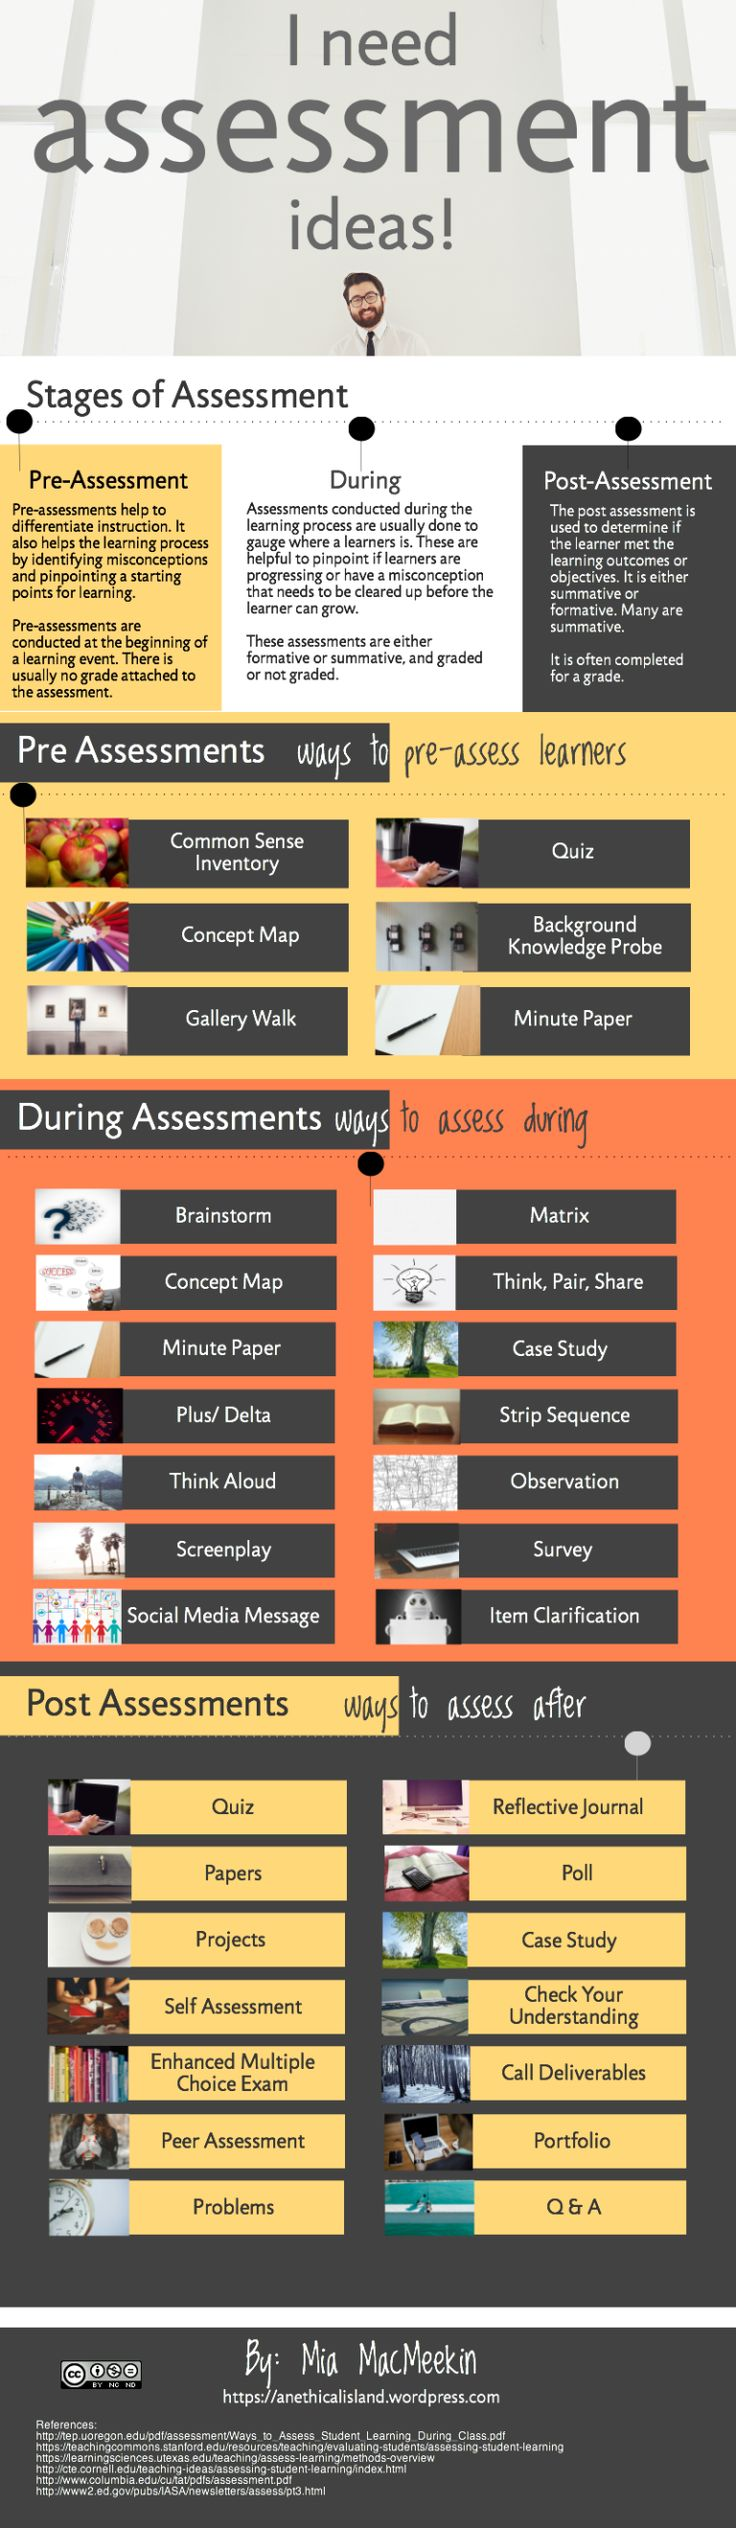 Students have various learning styles and strengths. This assessment guide has great ideas for assessing students in various manners. The pre, during, and post assessment organization is helpful.